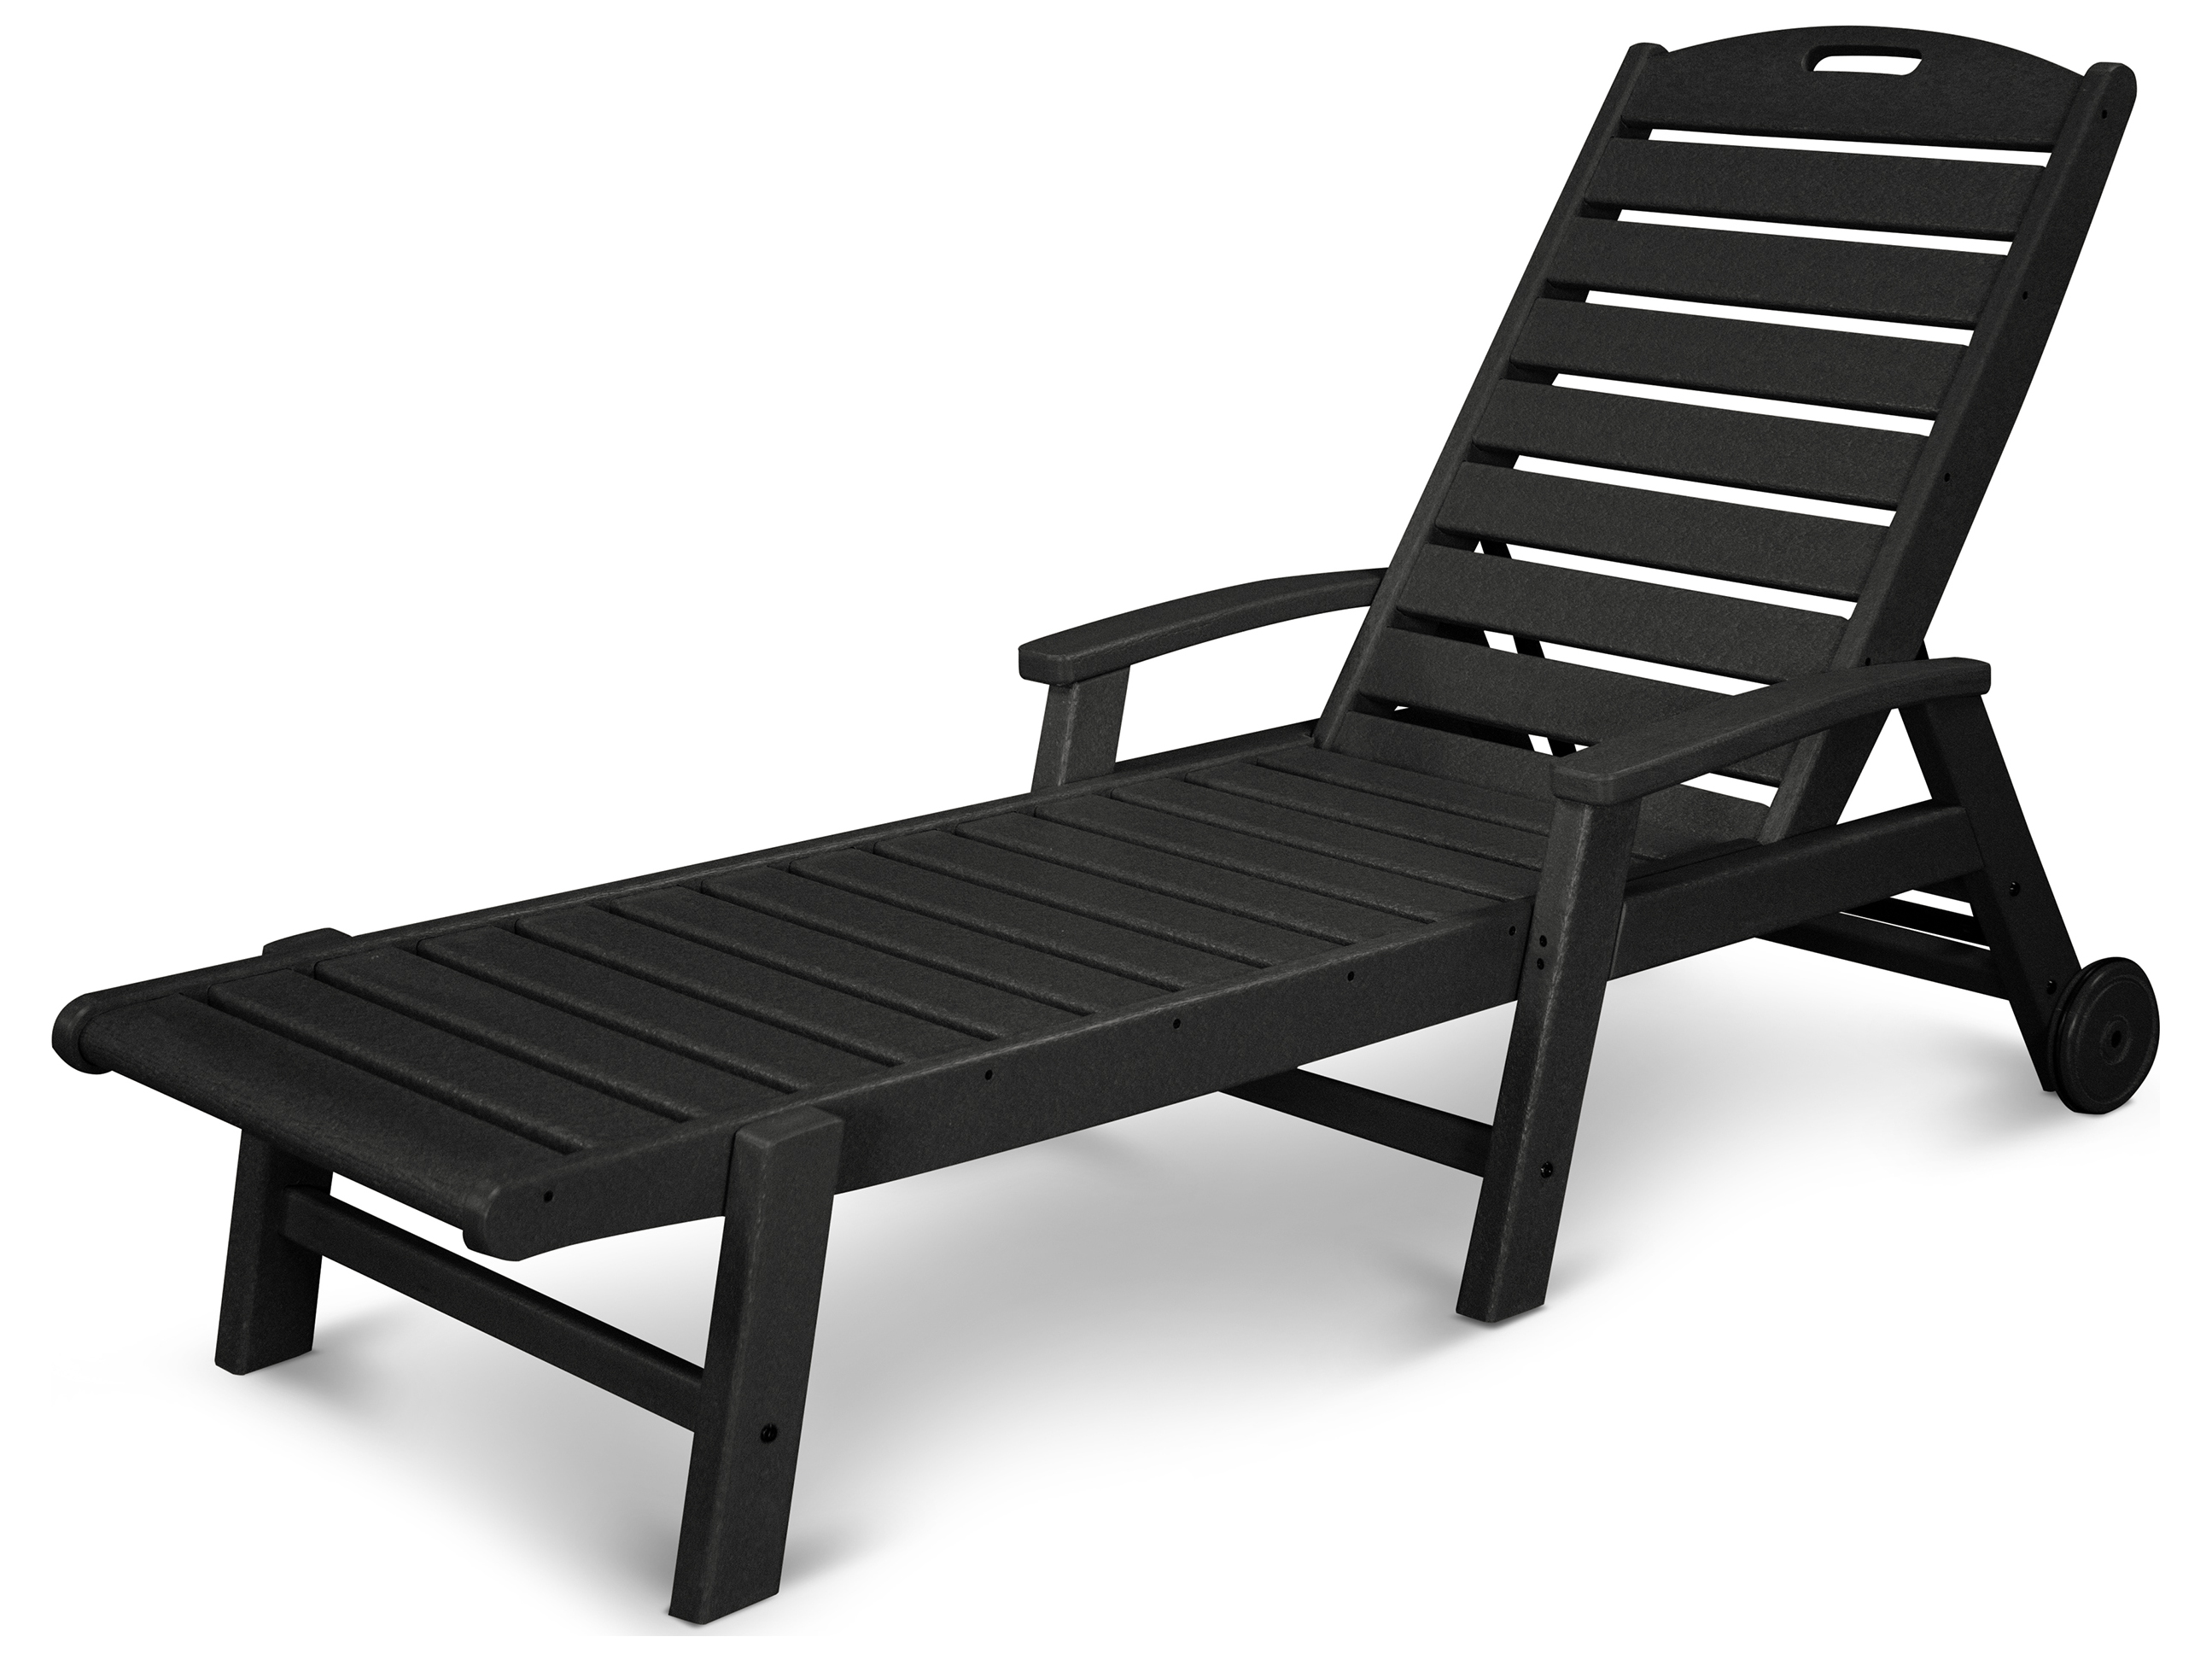 trex yacht club recycled plastic wheeled chaise trxtxw2280. Black Bedroom Furniture Sets. Home Design Ideas